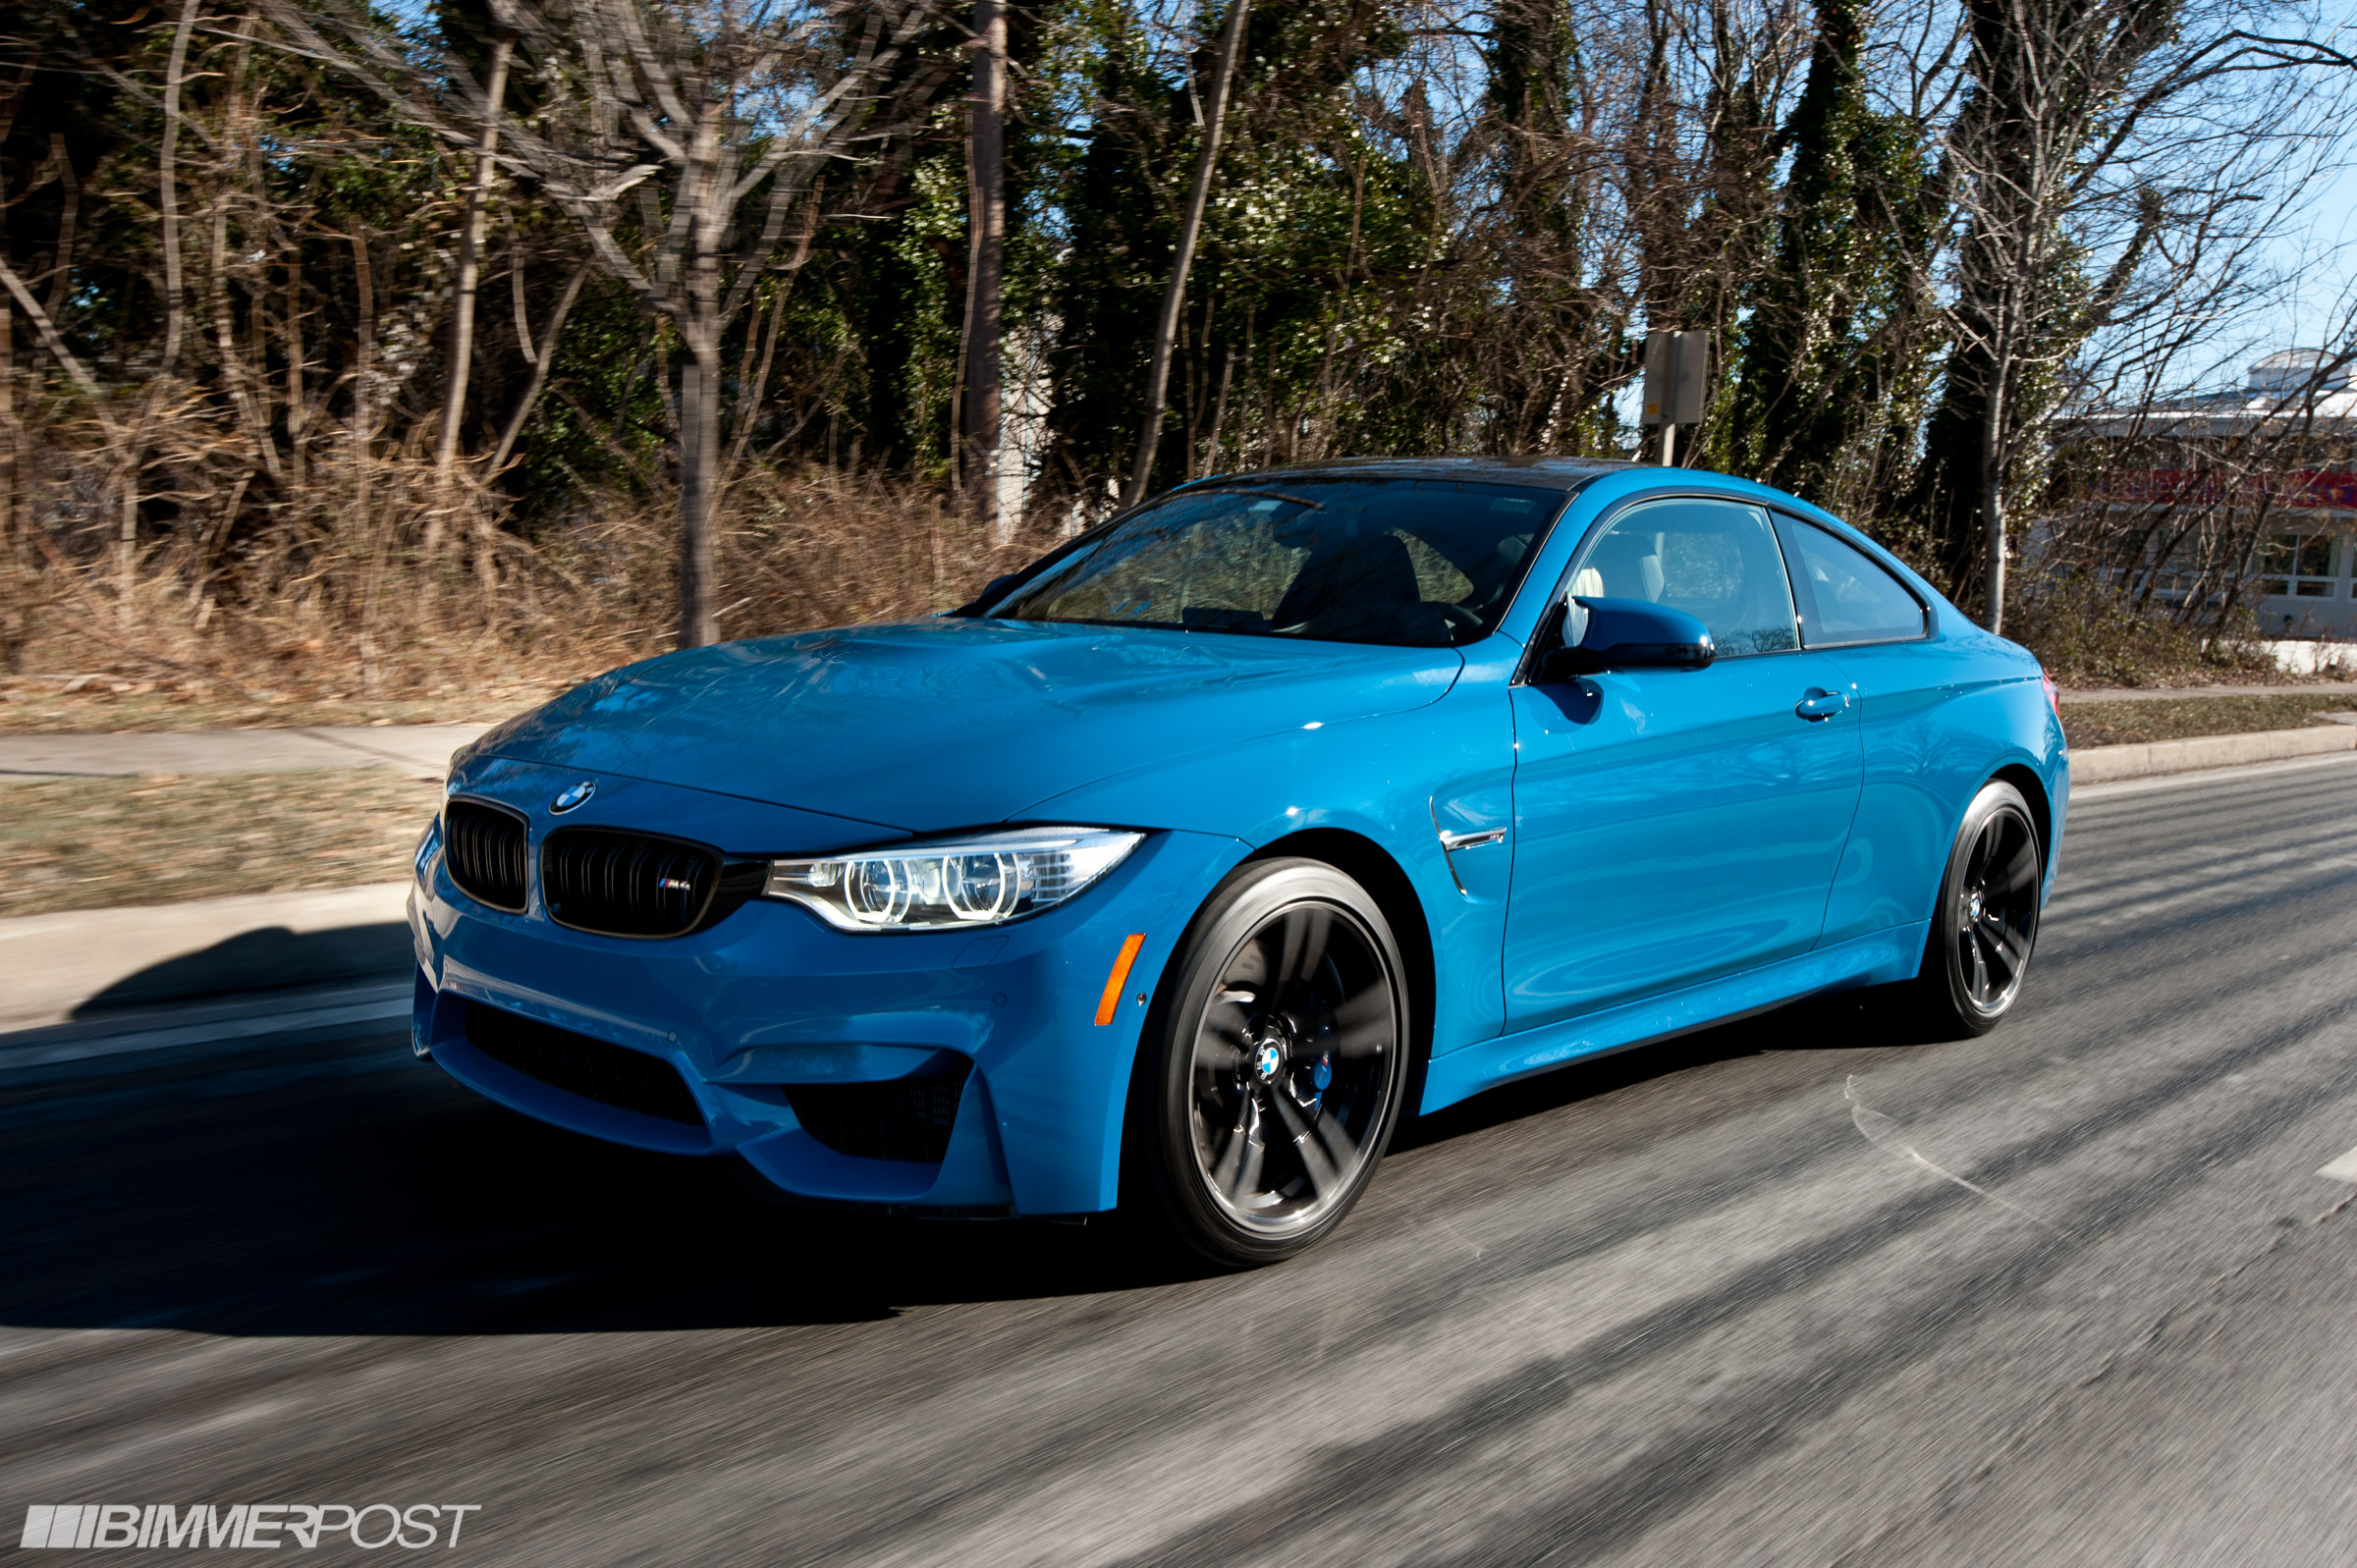 2015 M3 For Sale >> Laguna Seca Blue M4 and E46 M3 - together at last